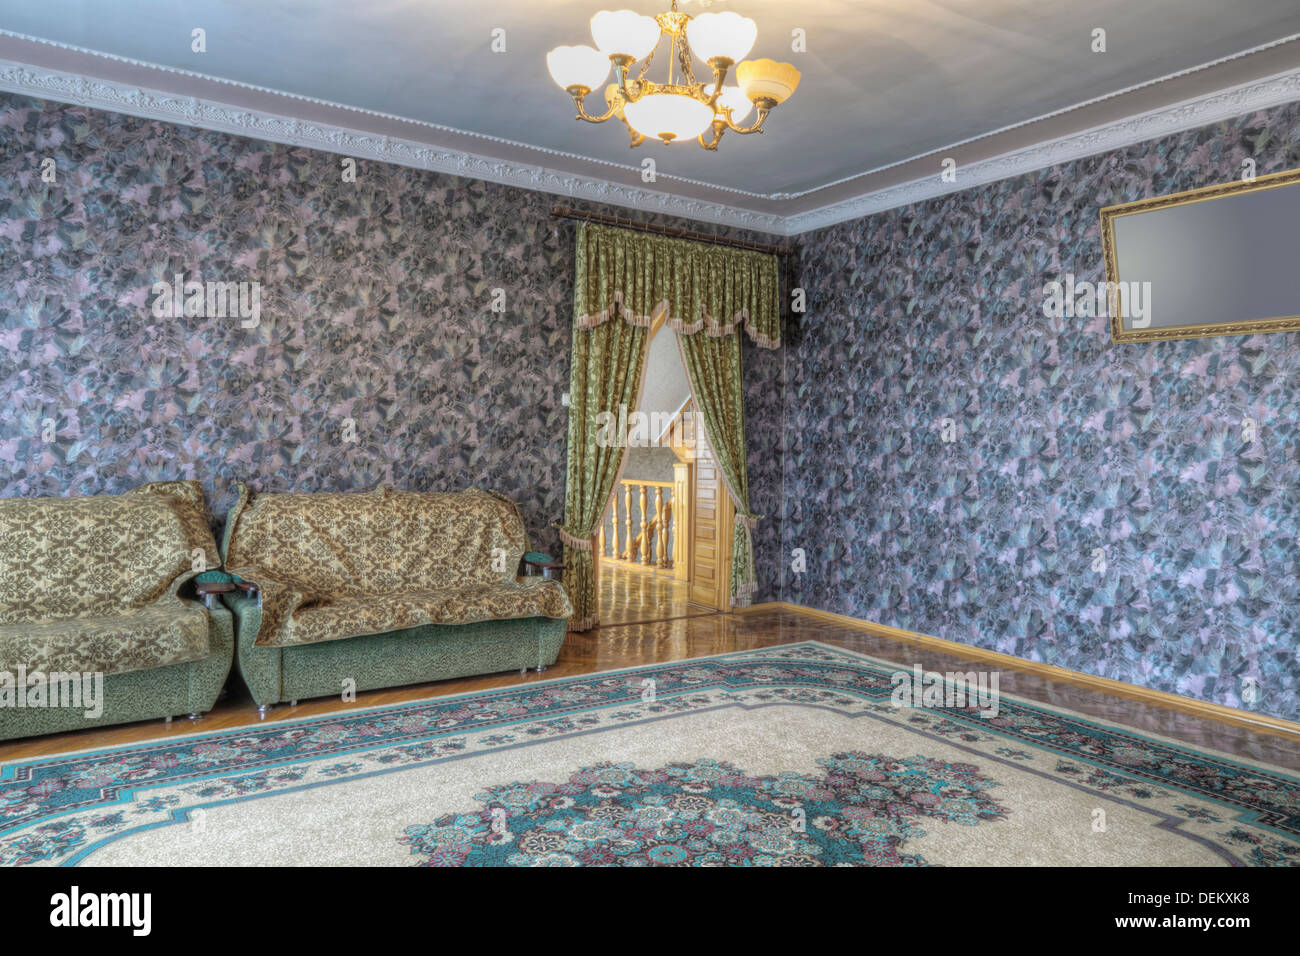 Wallpaper, sofa and drapes in ornate room - Stock Image